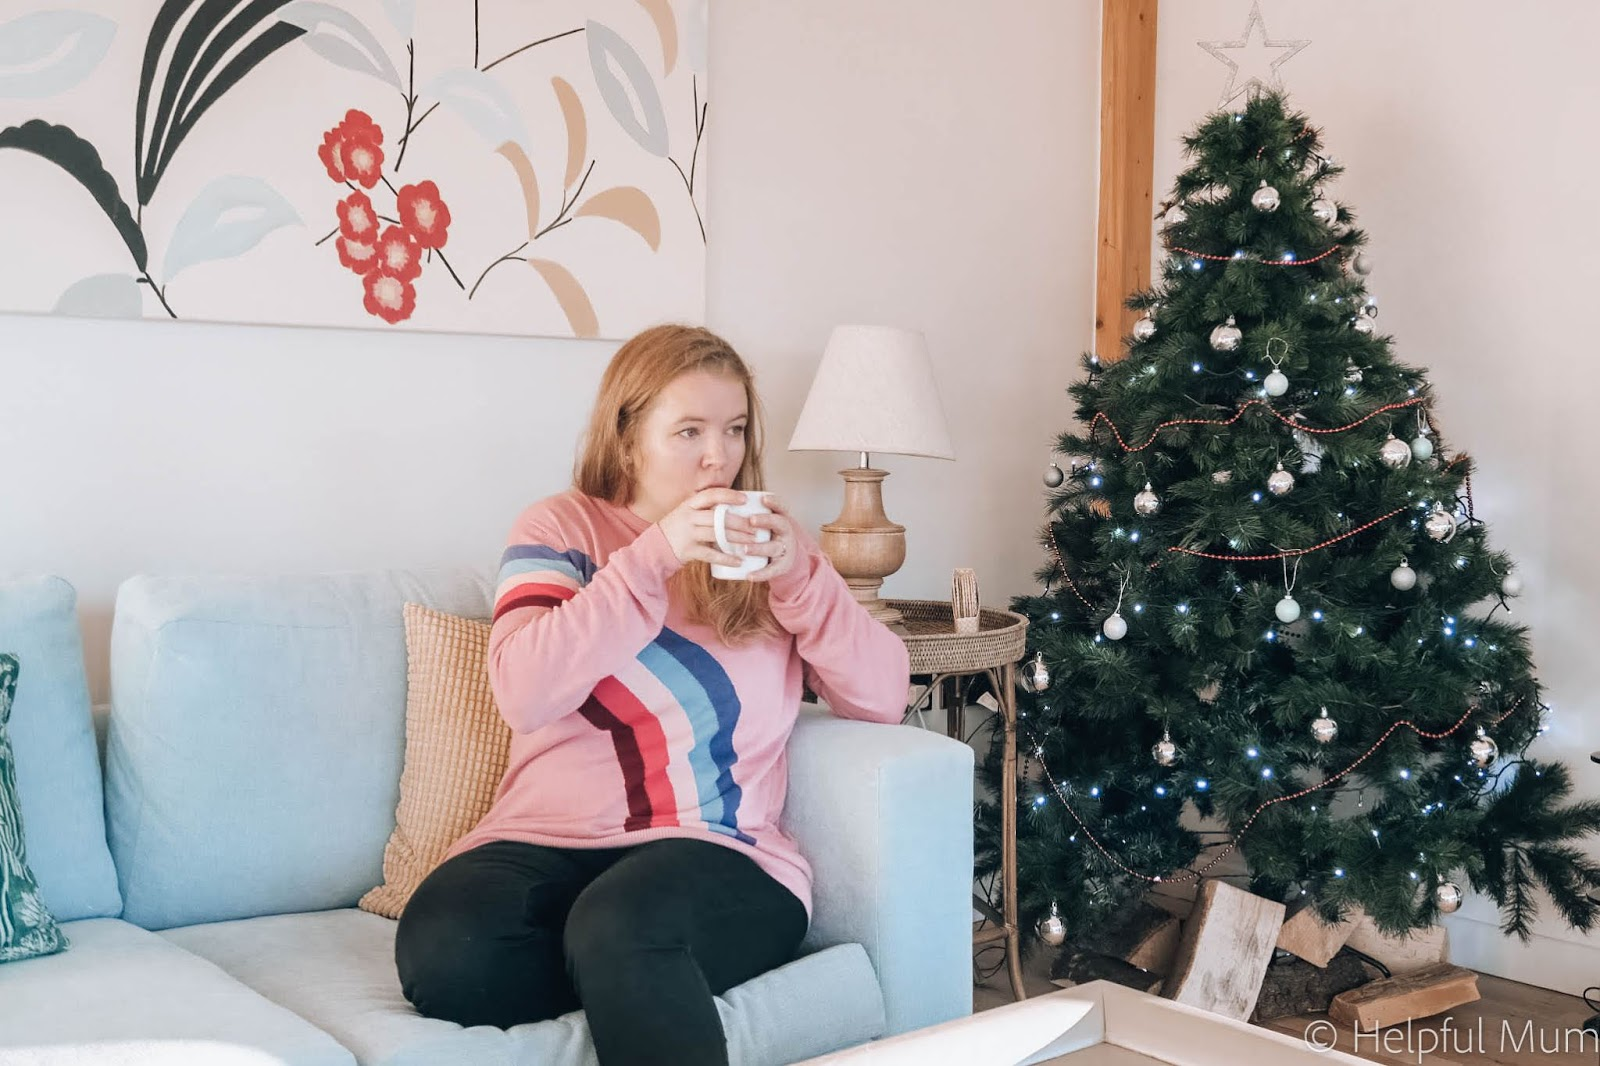 Relaxing at Christmas